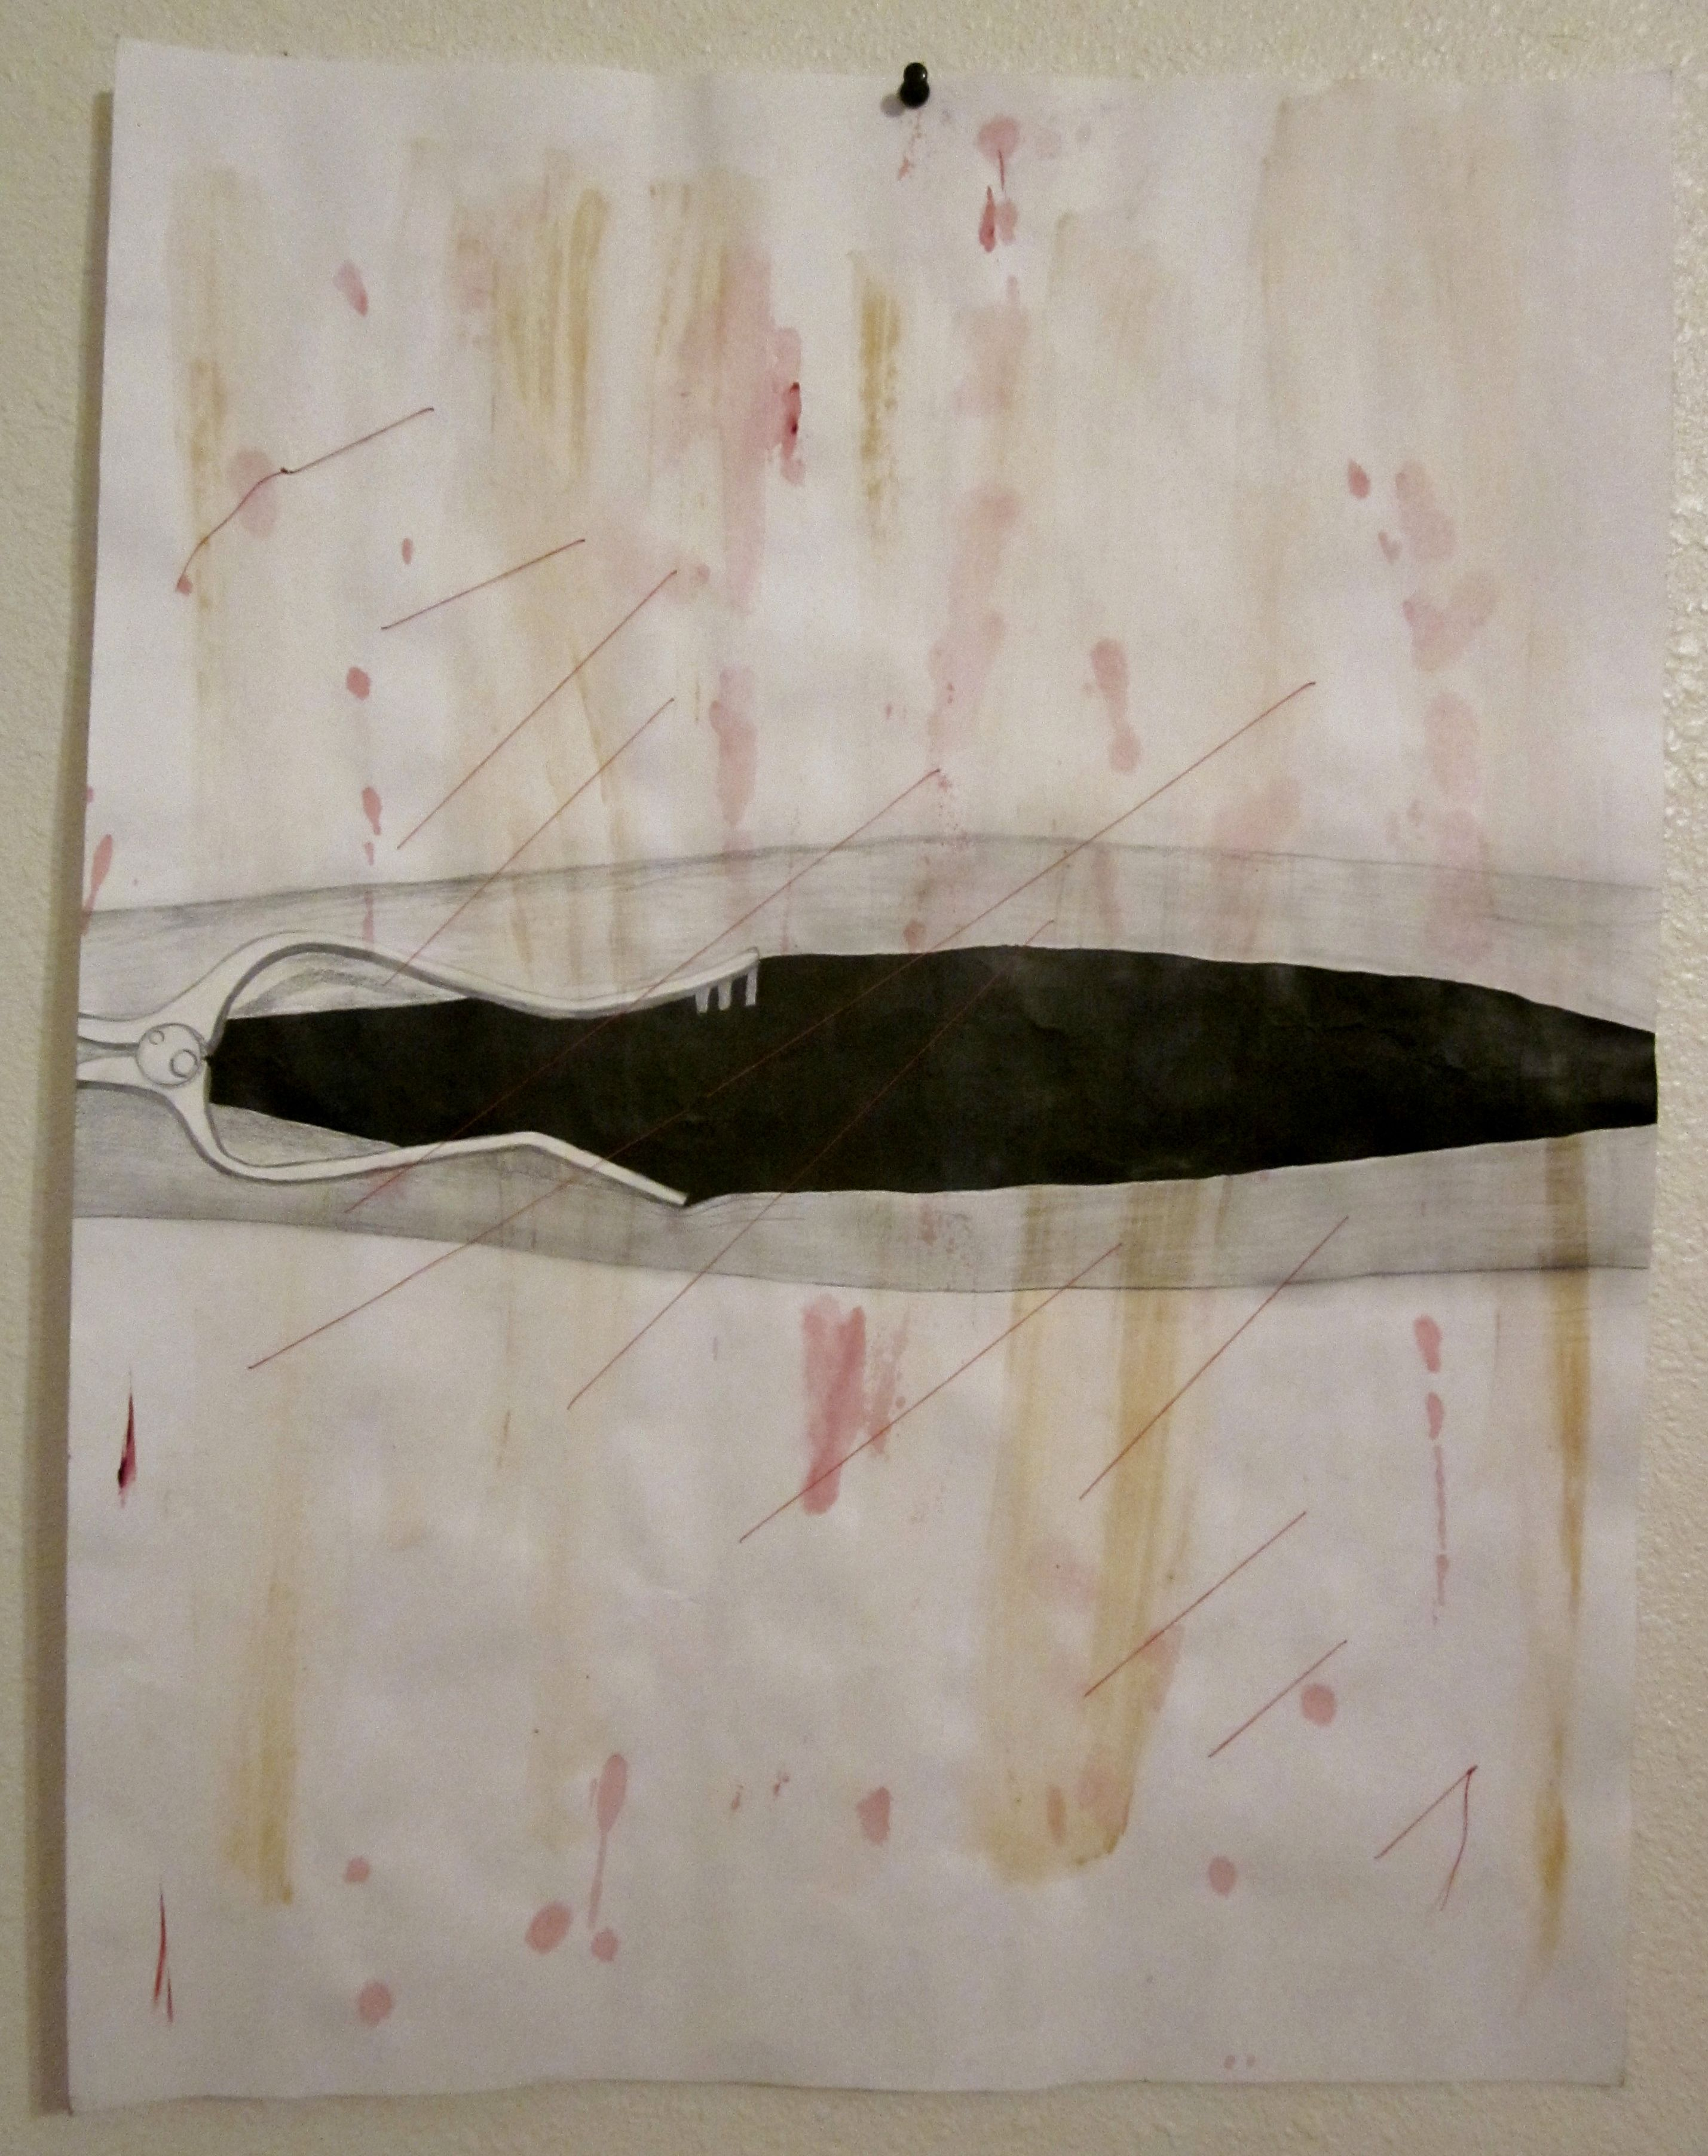 """Anatomy Series (Open Arm Surgery) by Taylor C. Kelley. 2011. Acrylic, Pencil, India Ink, & Thread. This is one drawing in a series of five drawings entitled """"Anatomy Series""""."""